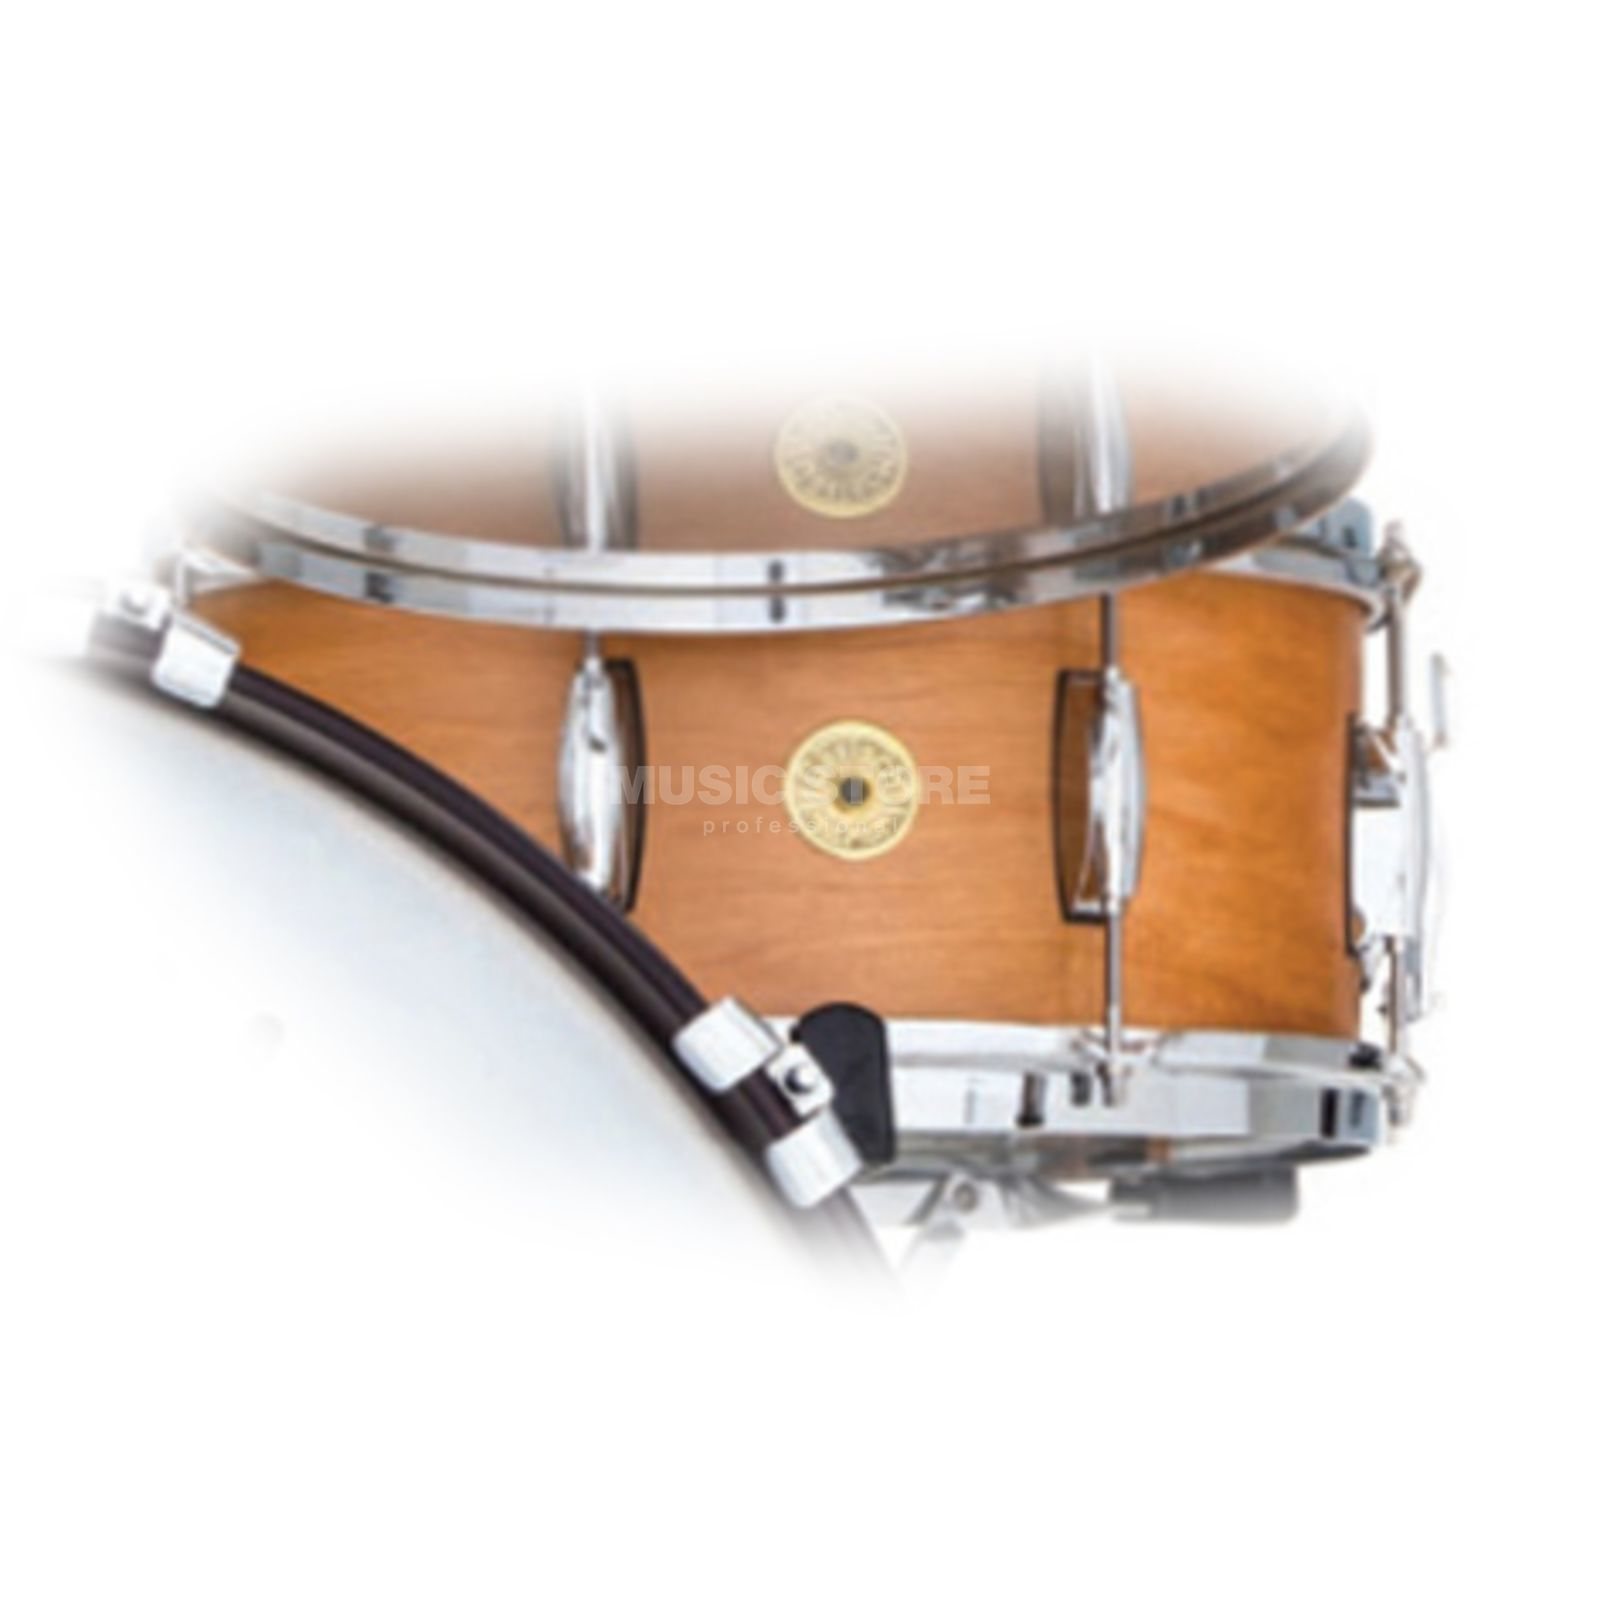 "Gretsch Broadkaster Snare 14""x6,5"", Vintage, Satin Classic Maple Produktbild"